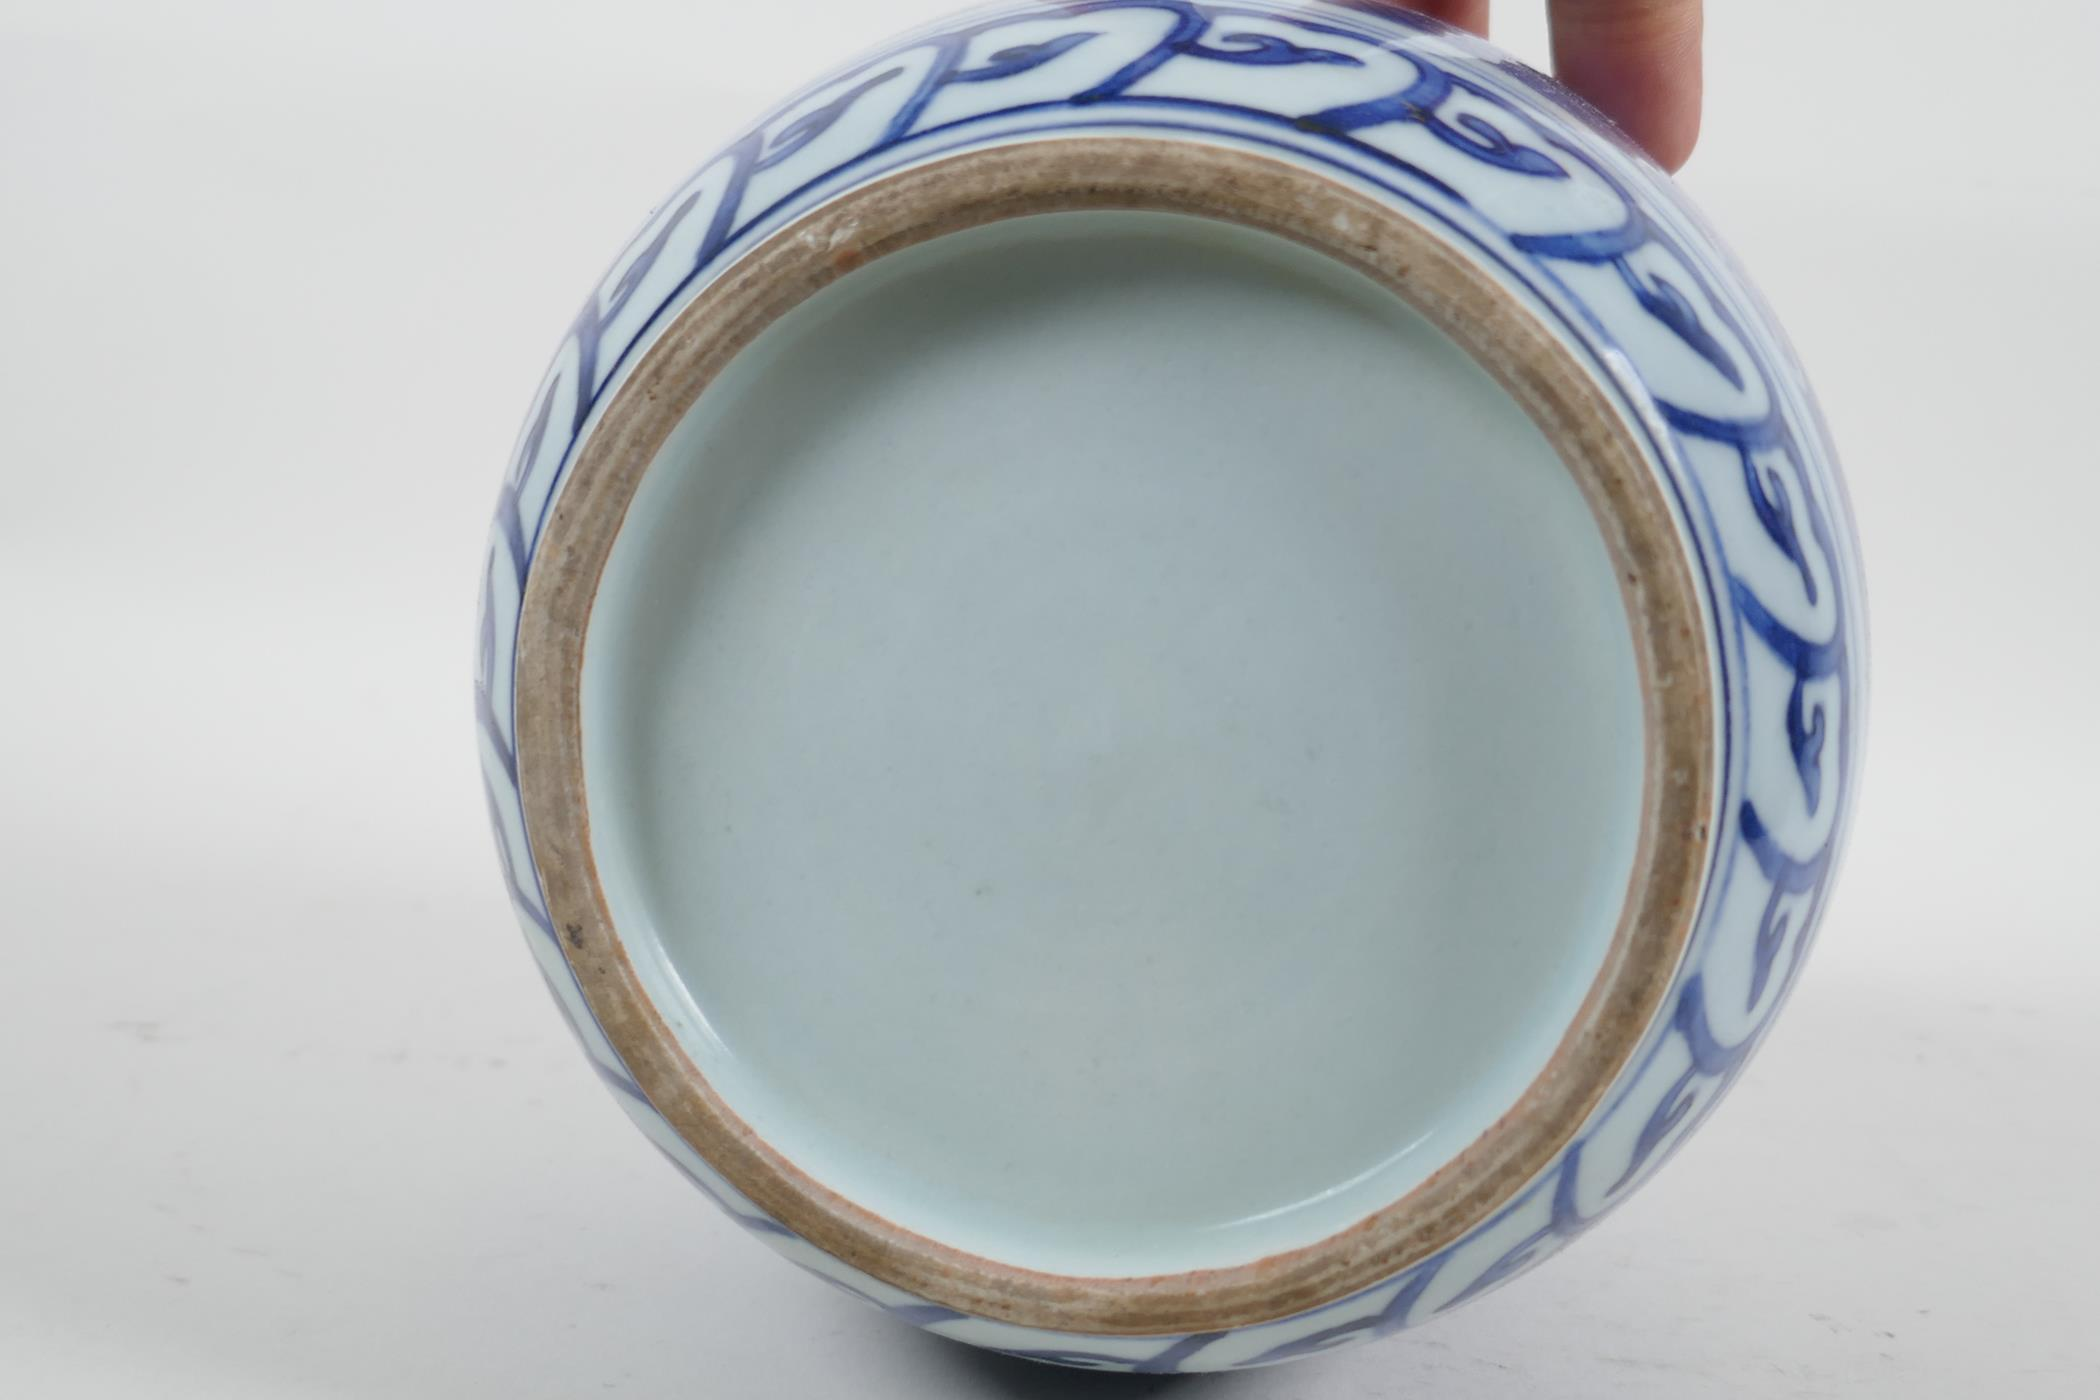 """A Chinese blue and white porcelain pot, with decorative panels depicting birds and flowers, 6½"""" high - Image 4 of 4"""